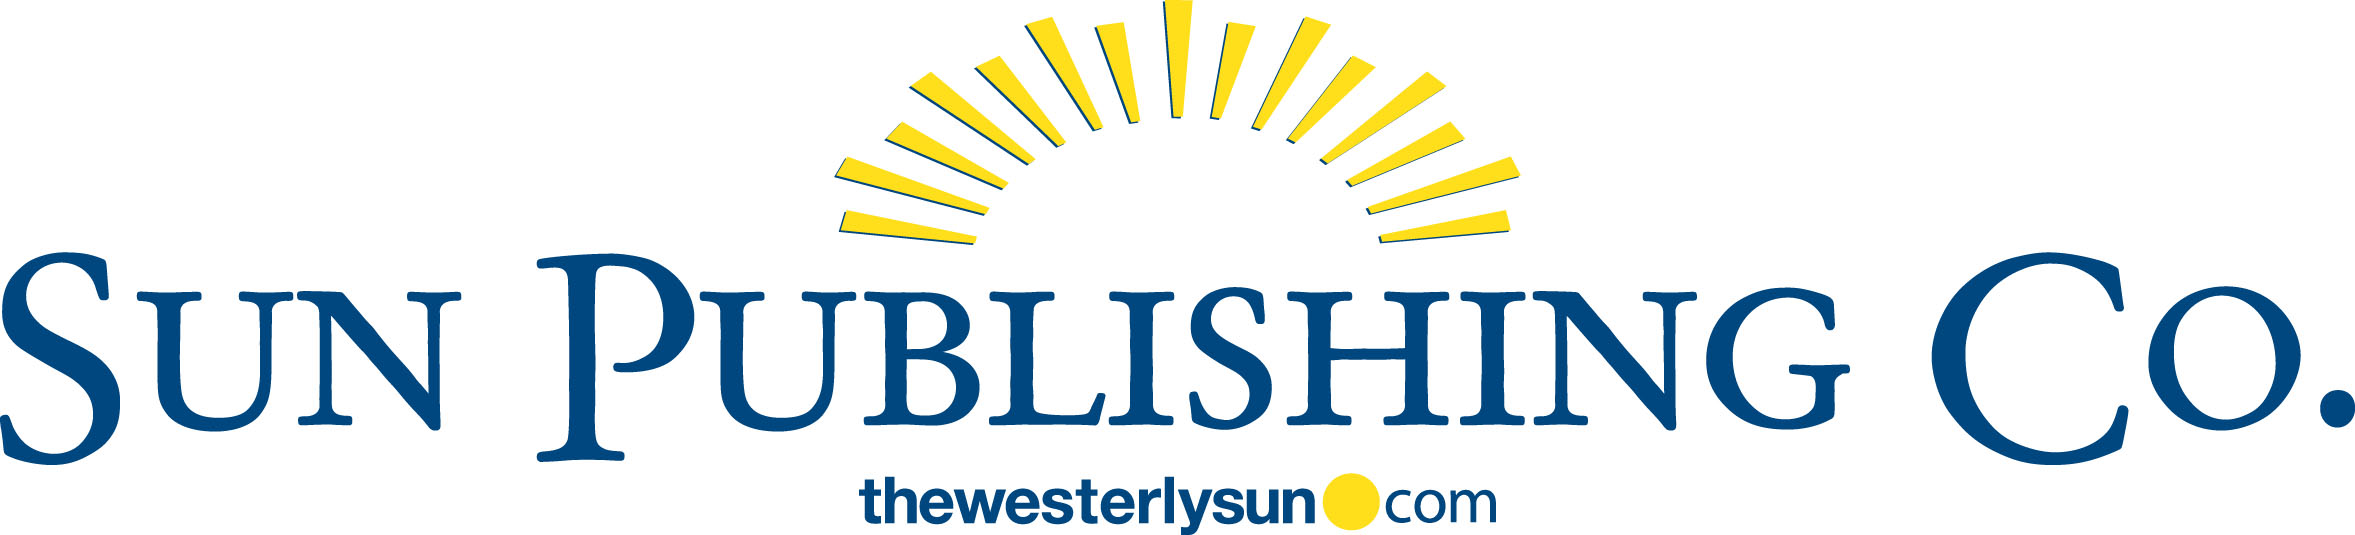 Sun Publishing logo